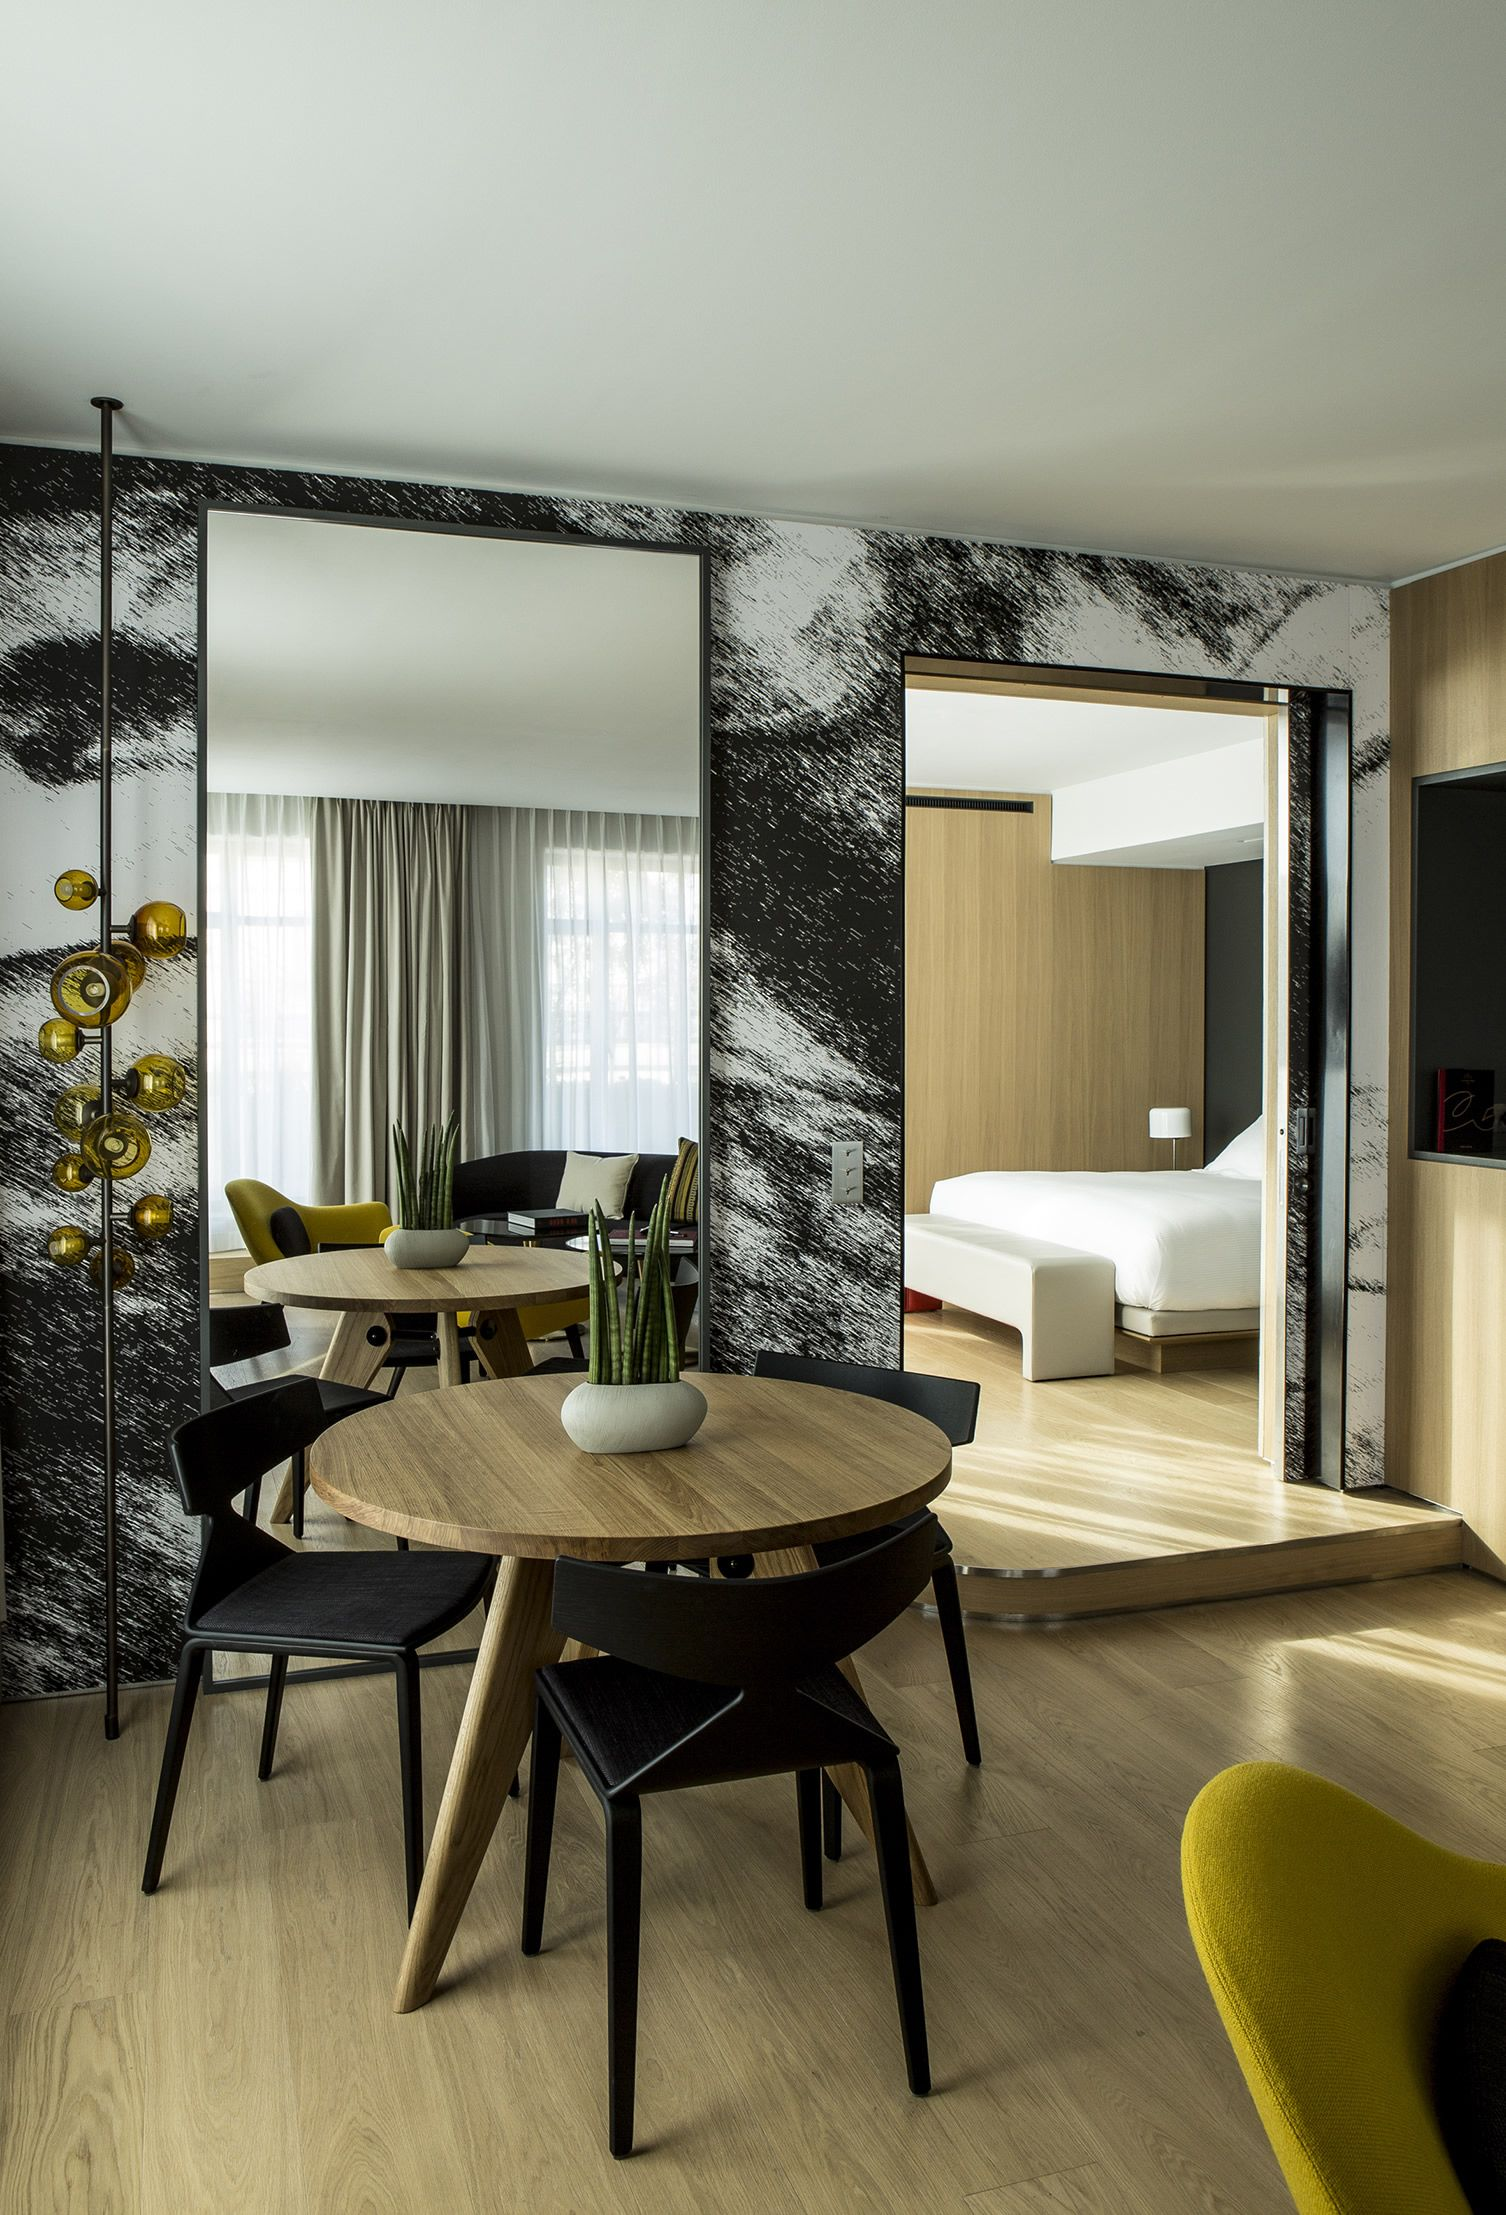 Telecommunication Room Design: Connect With Historical Paris During A Stay At This 1930s